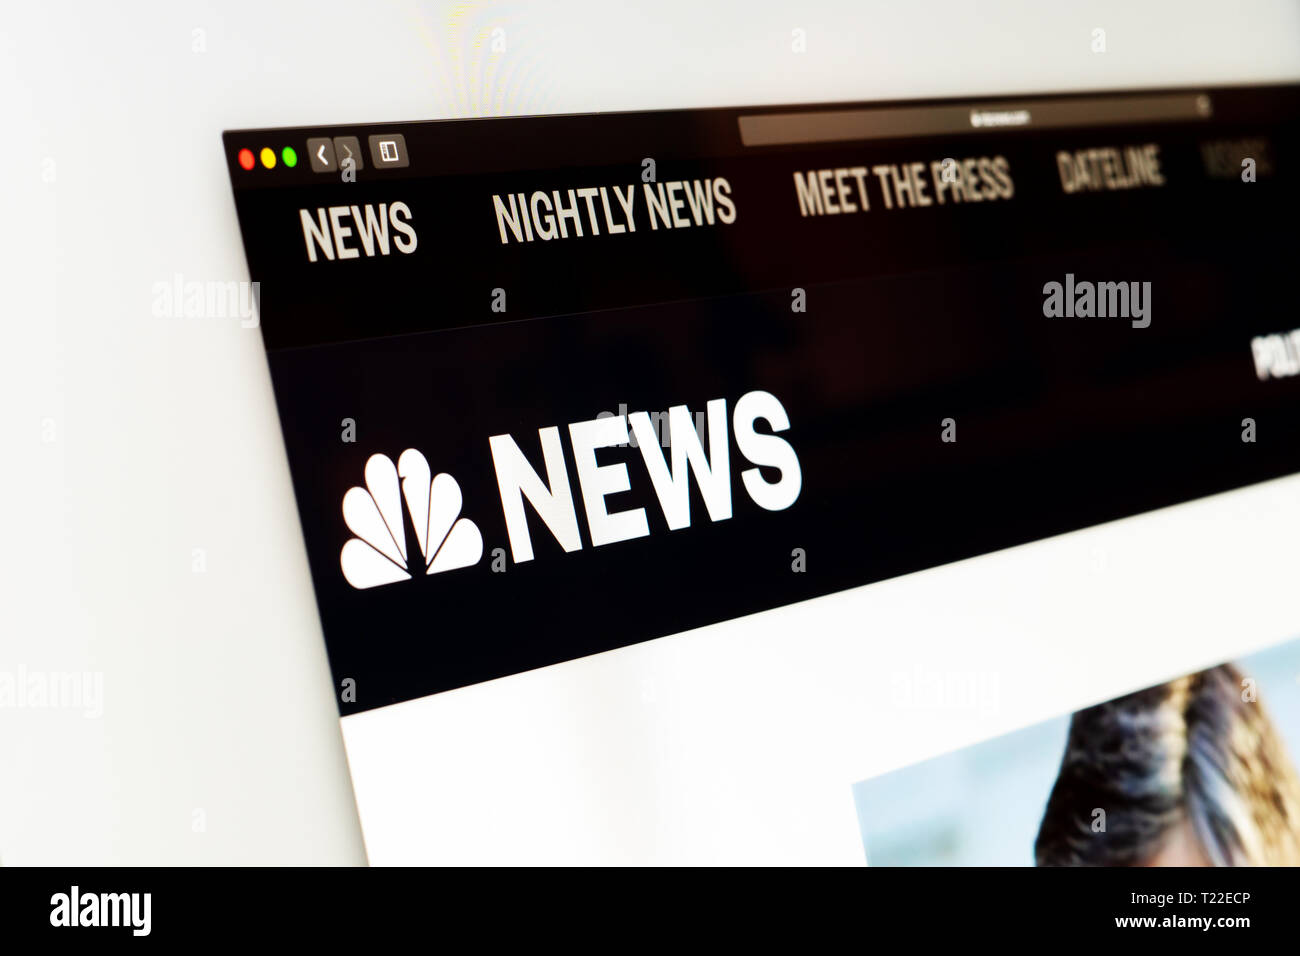 NBC News website homepage. Close up of NBC News channel logo. Сan be used as an illustration for other news media or sites - Stock Image